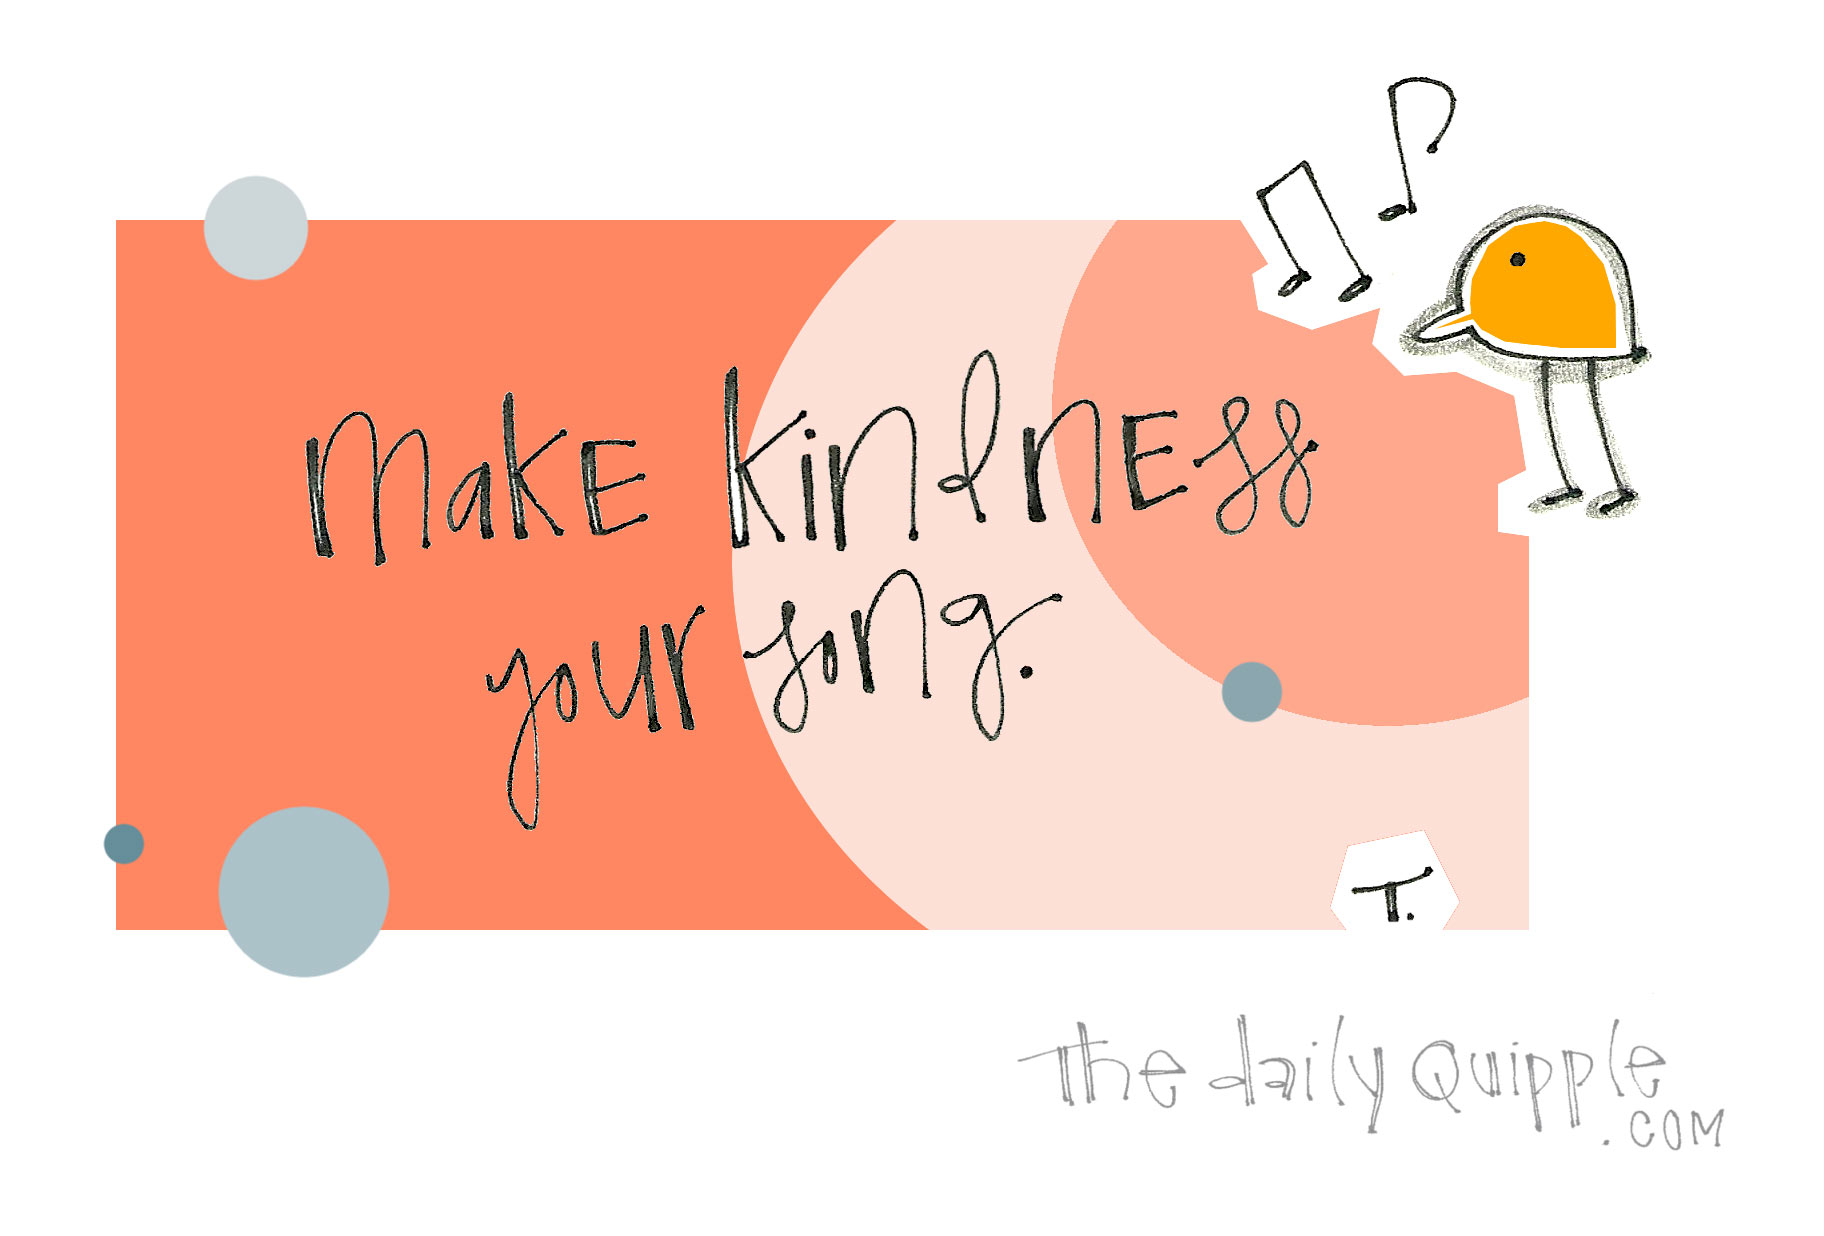 Make kindness your song.